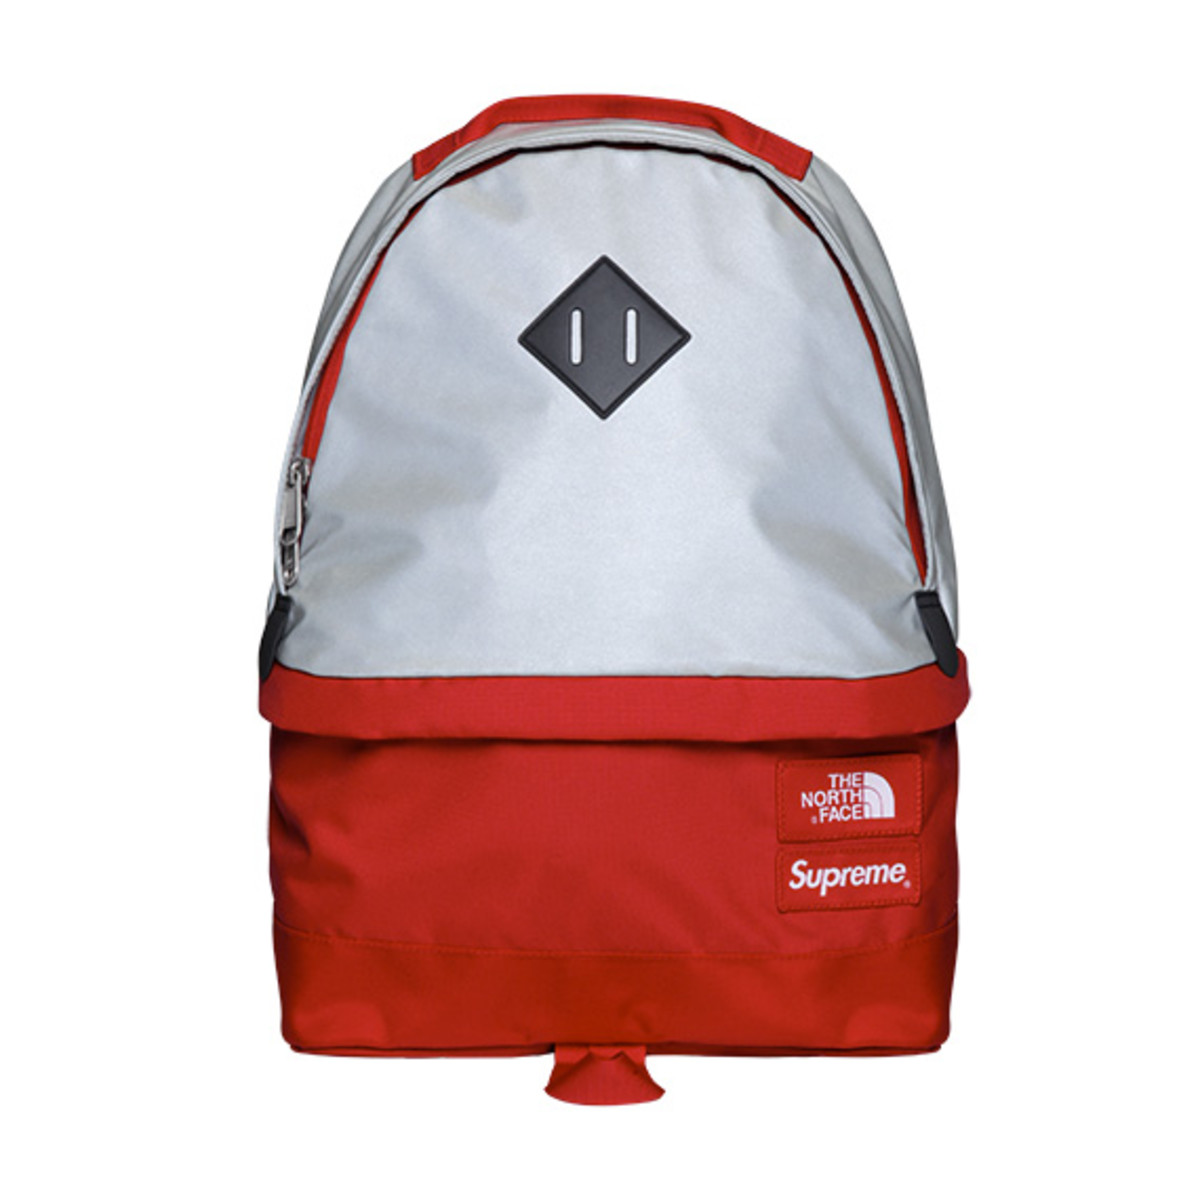 the-north-face-supreme-3m-refelctive-collection-medium-day-pack-01